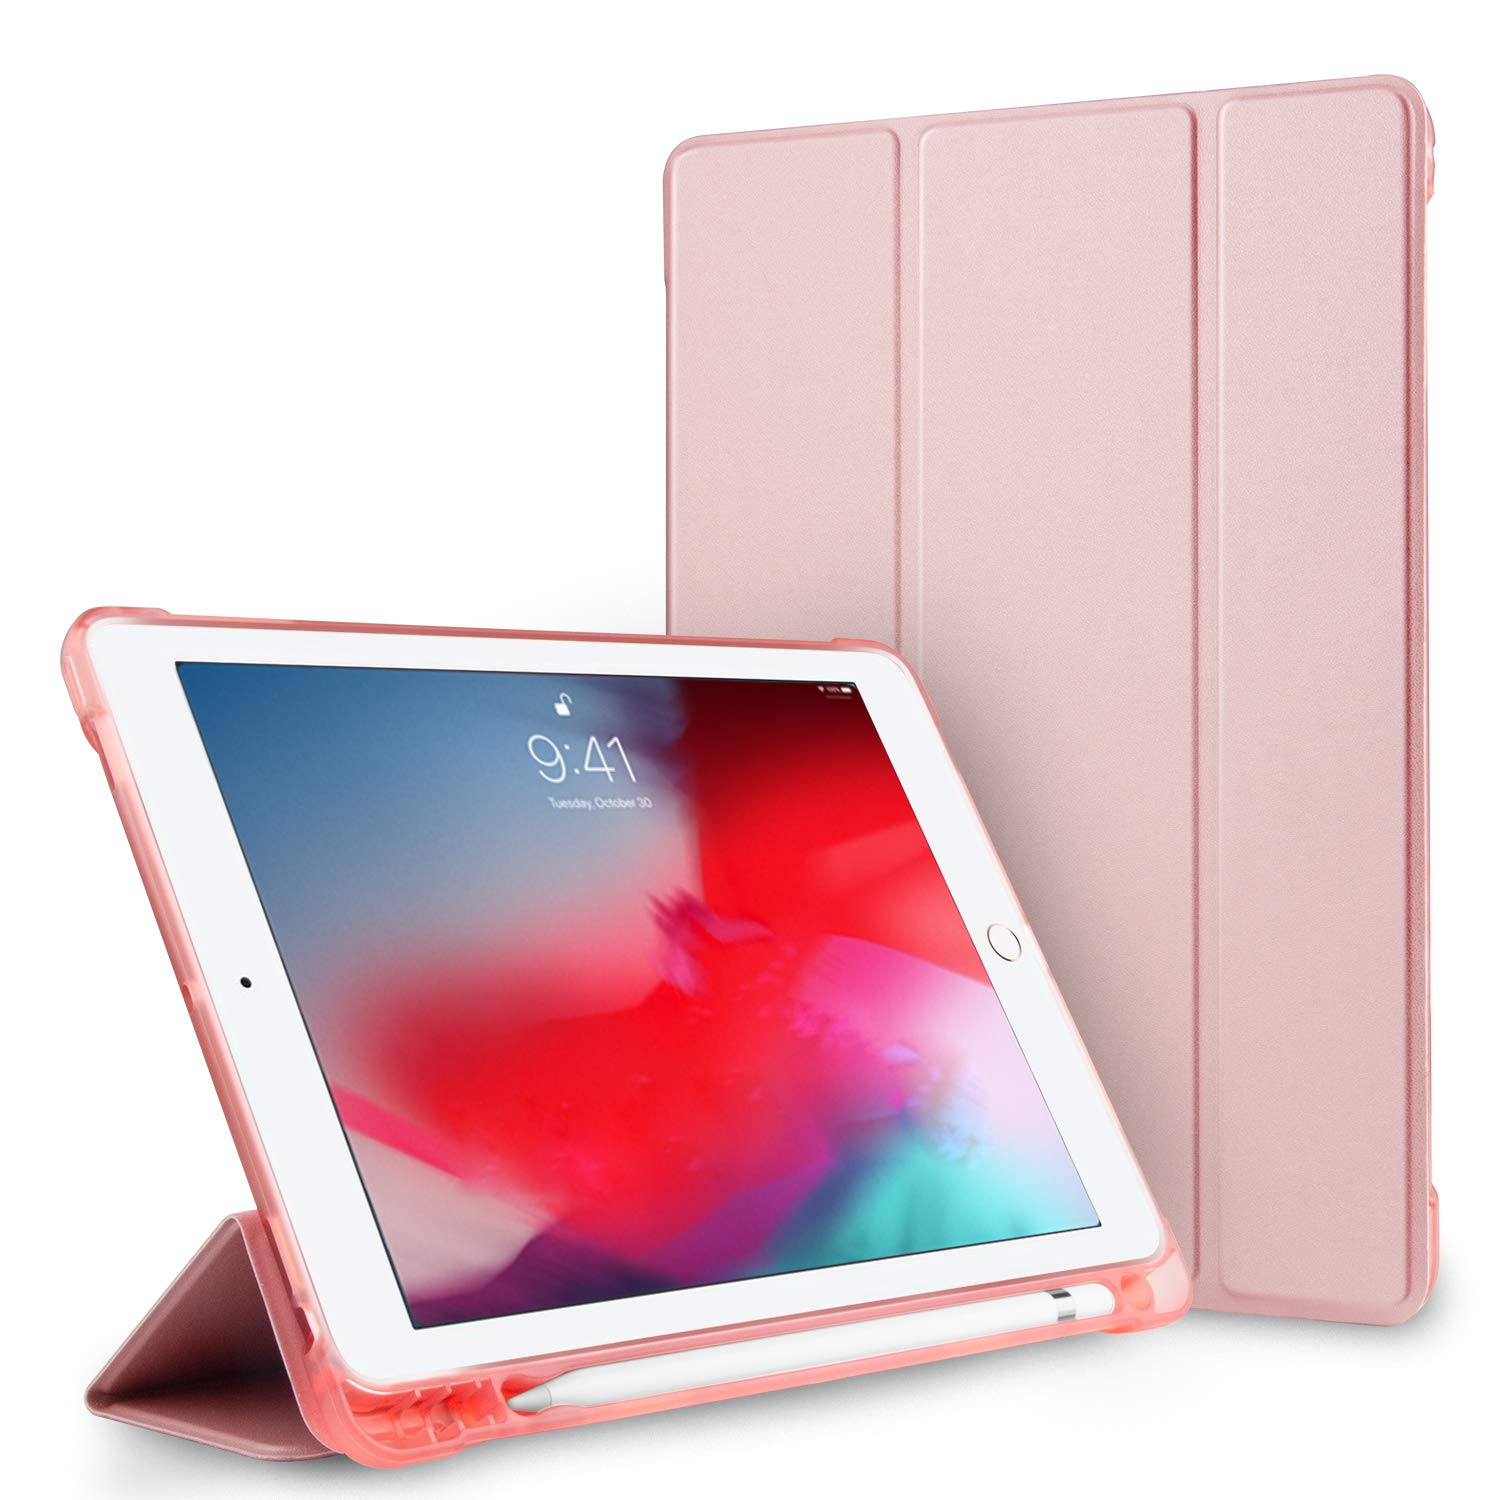 Yunerz iPad 9.7 2018/2017 Case with Pencil Holder, Shockproof Full-Body Protective Leather Case with Auto Wake/Sleep Function, Compatible iPad 9.7 inch 6th/5th Generation/iPad Air 1/2 (Pink)